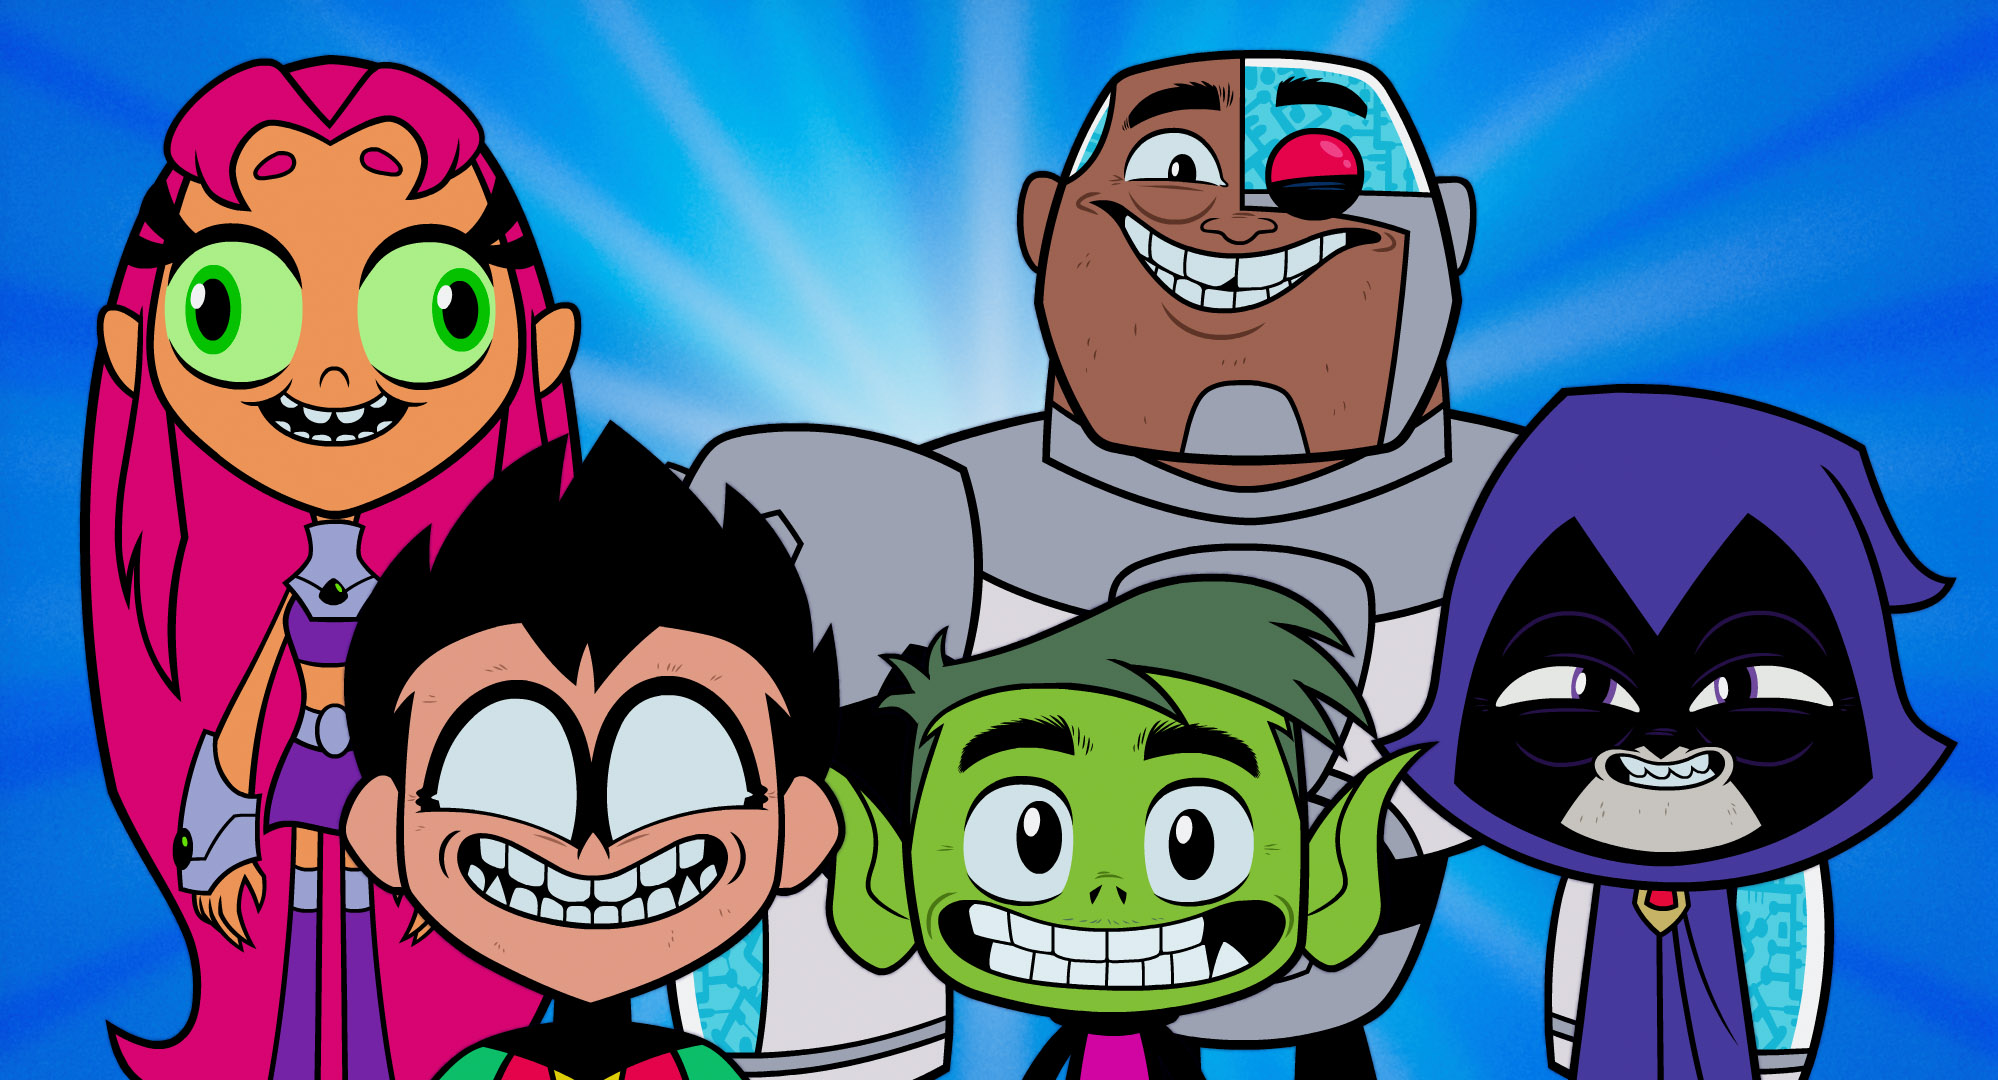 Teen Titans go to the movies smiling heroes fun